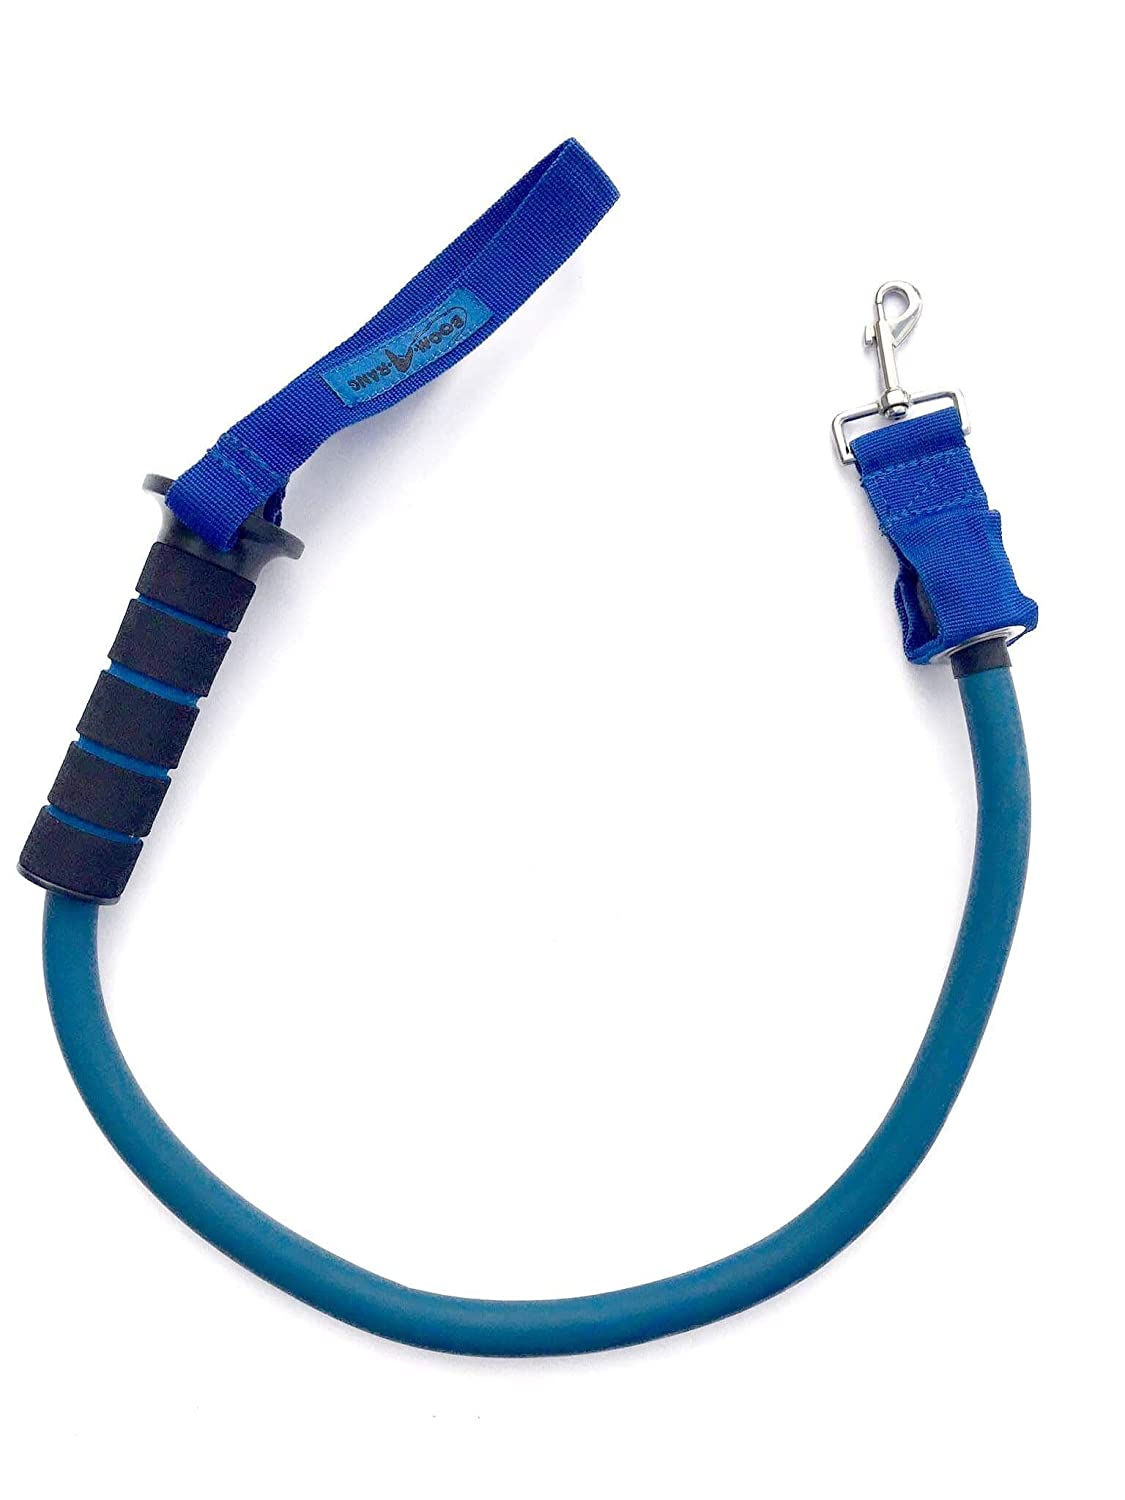 blueE Boomarang Leash Dog 'Training Leash' Shock Absorber removes 50% Pull Guaranteed Dogs UP to 100LBS (bluee)